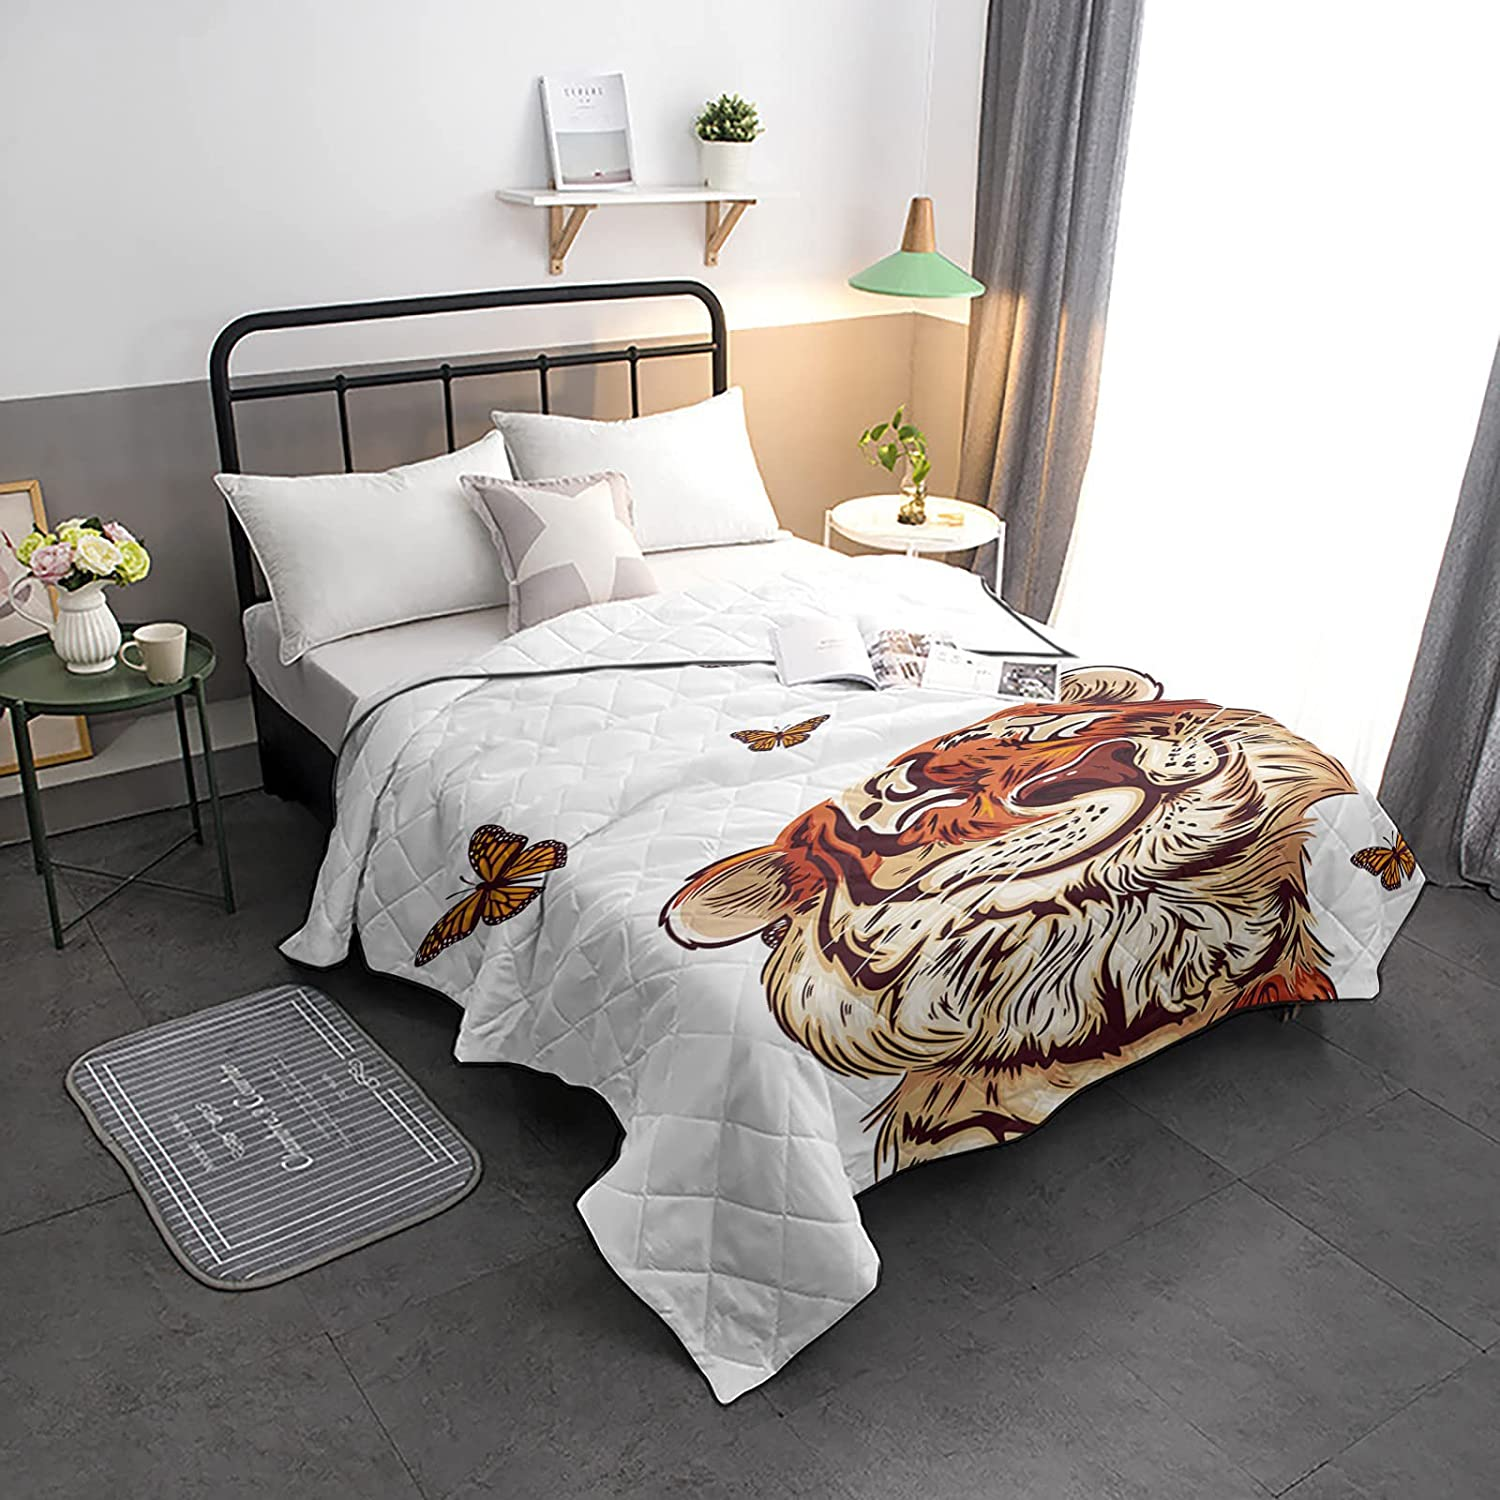 Down Free shipping Special Campaign Alternative Comforter Funny Tiger Butterfly Animal Cartoon